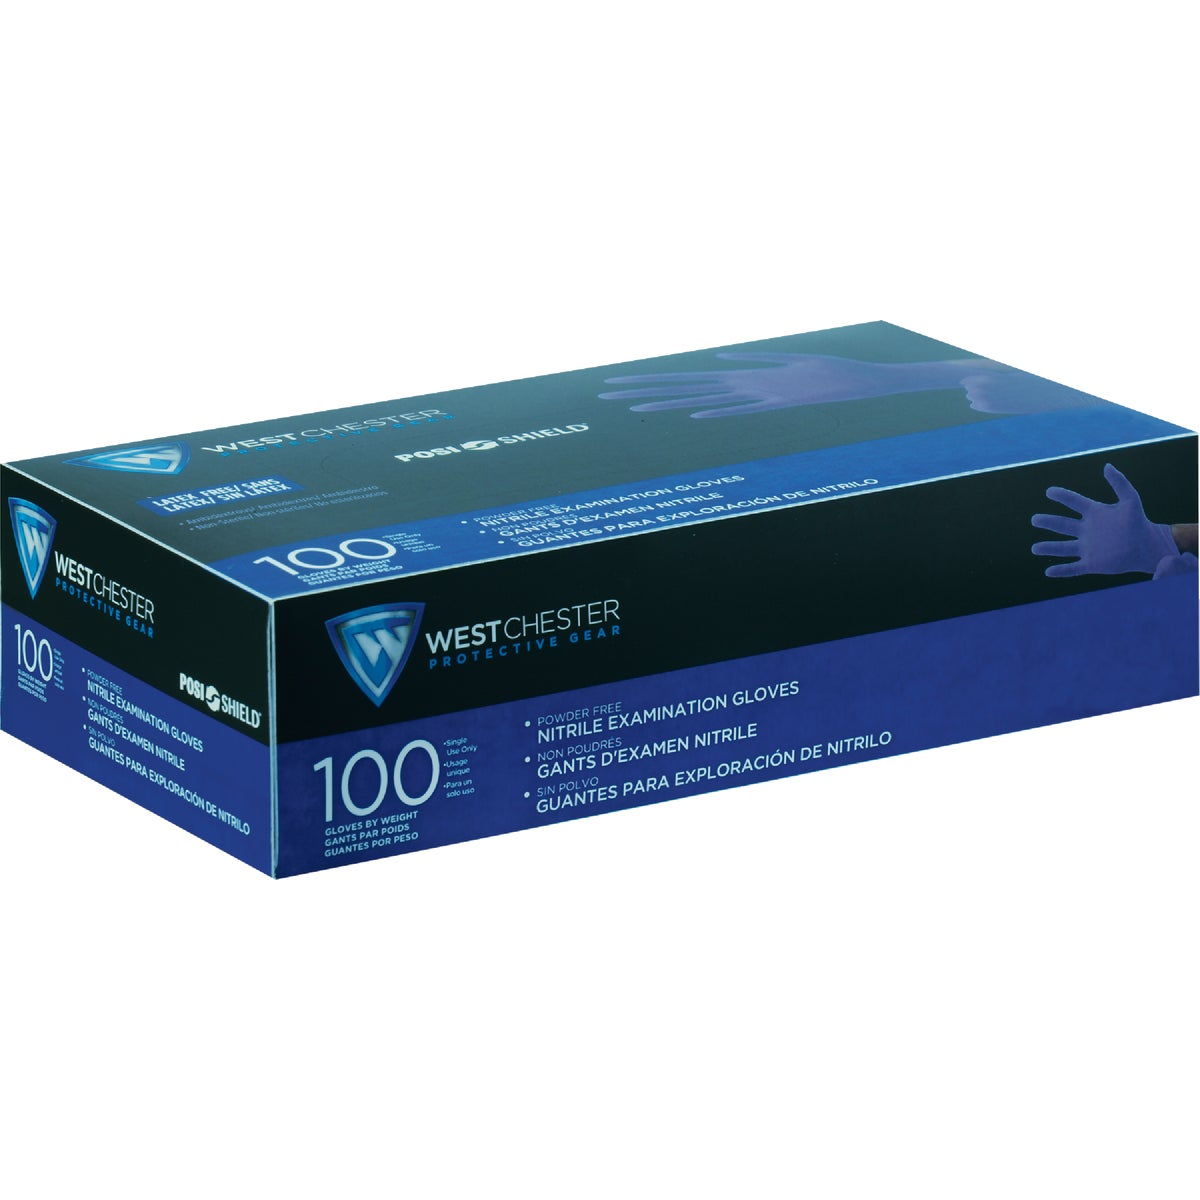 MED EXAM NITRILE GLOVE - 2930/M by West Chester Incom